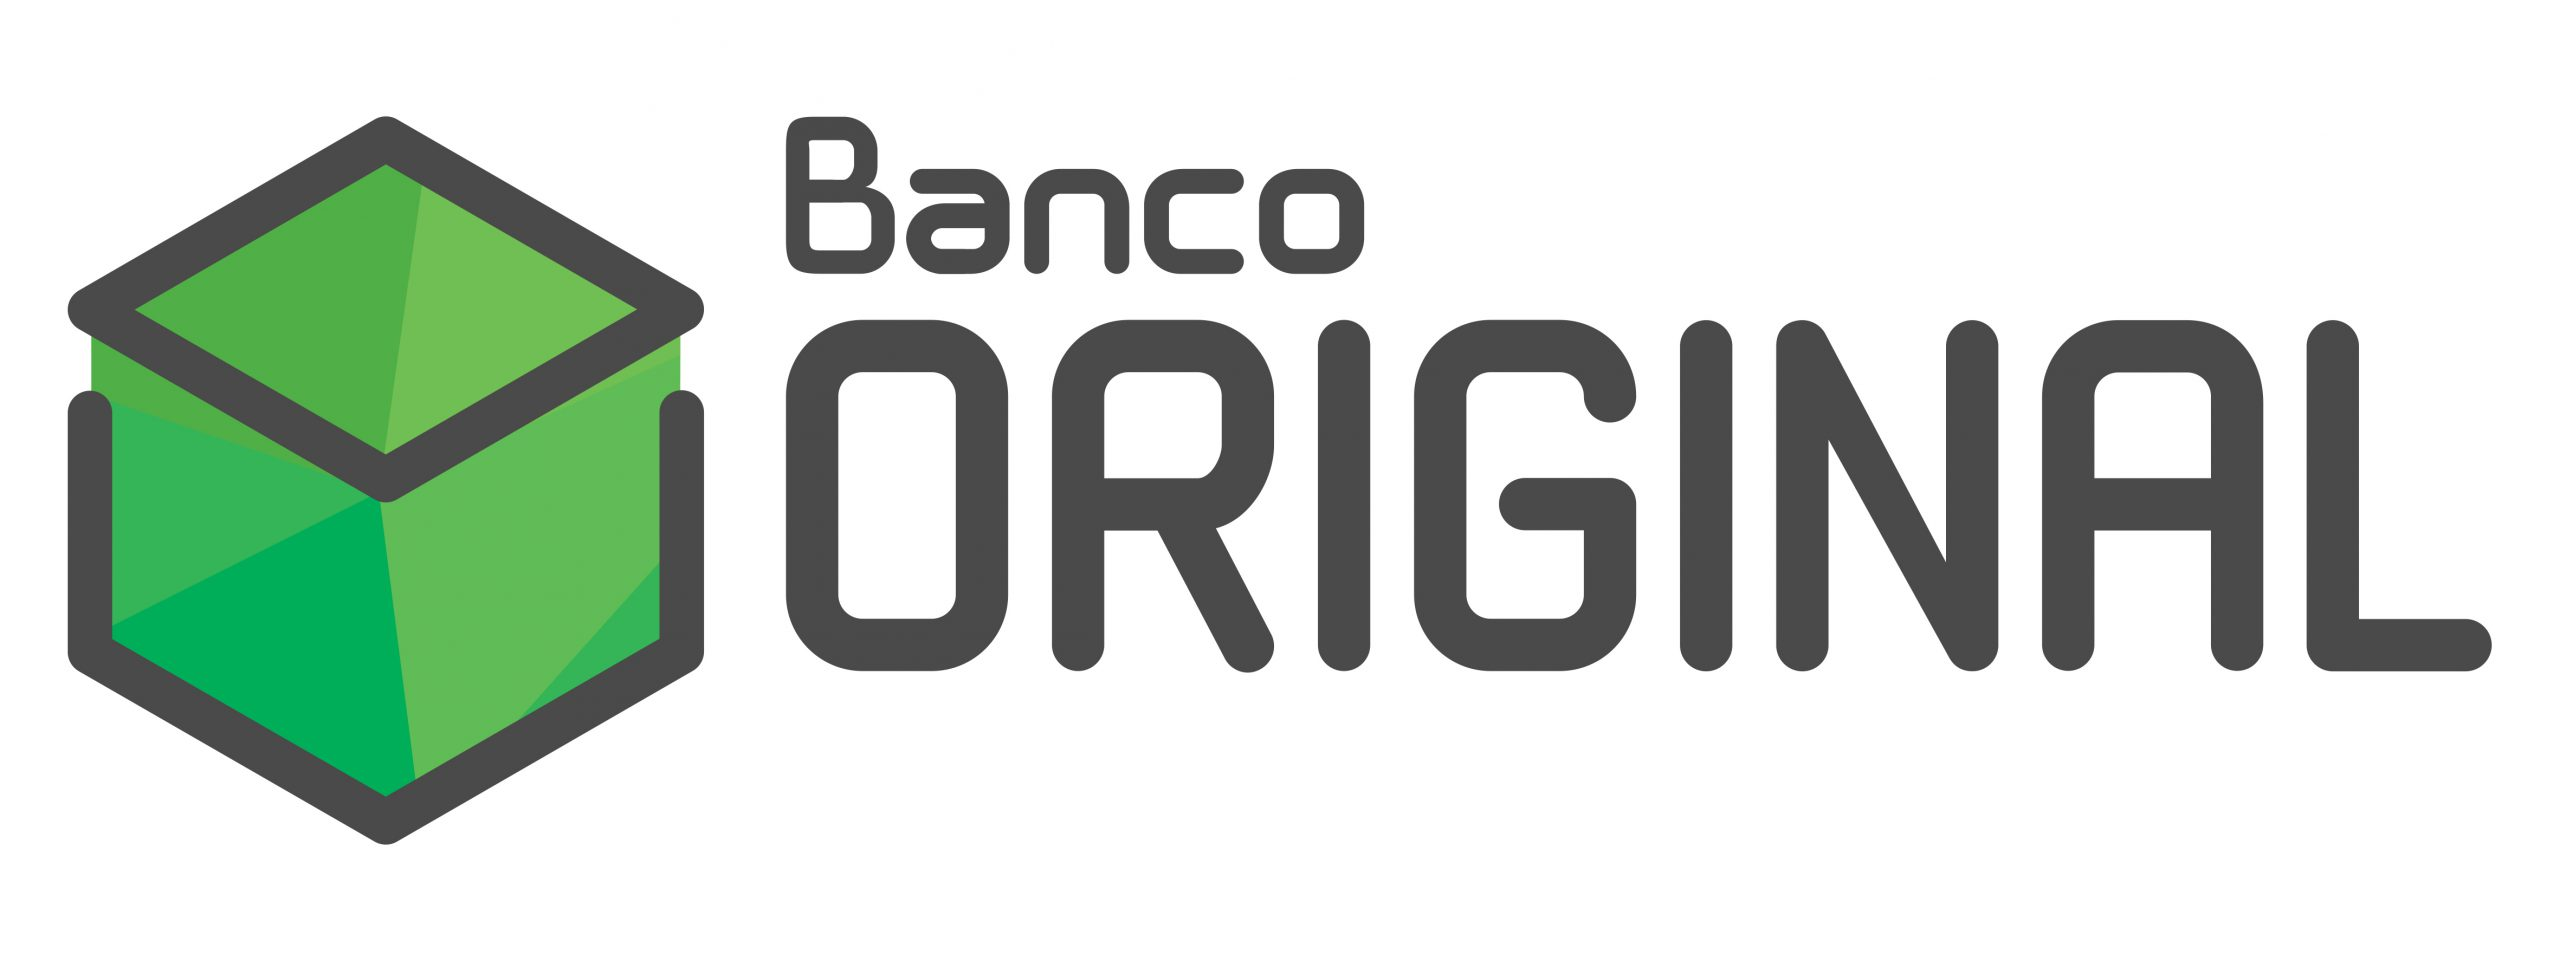 https://acessodigital.com/wp-content/uploads/2020/05/LogoBancoOriginal-scaled.jpg